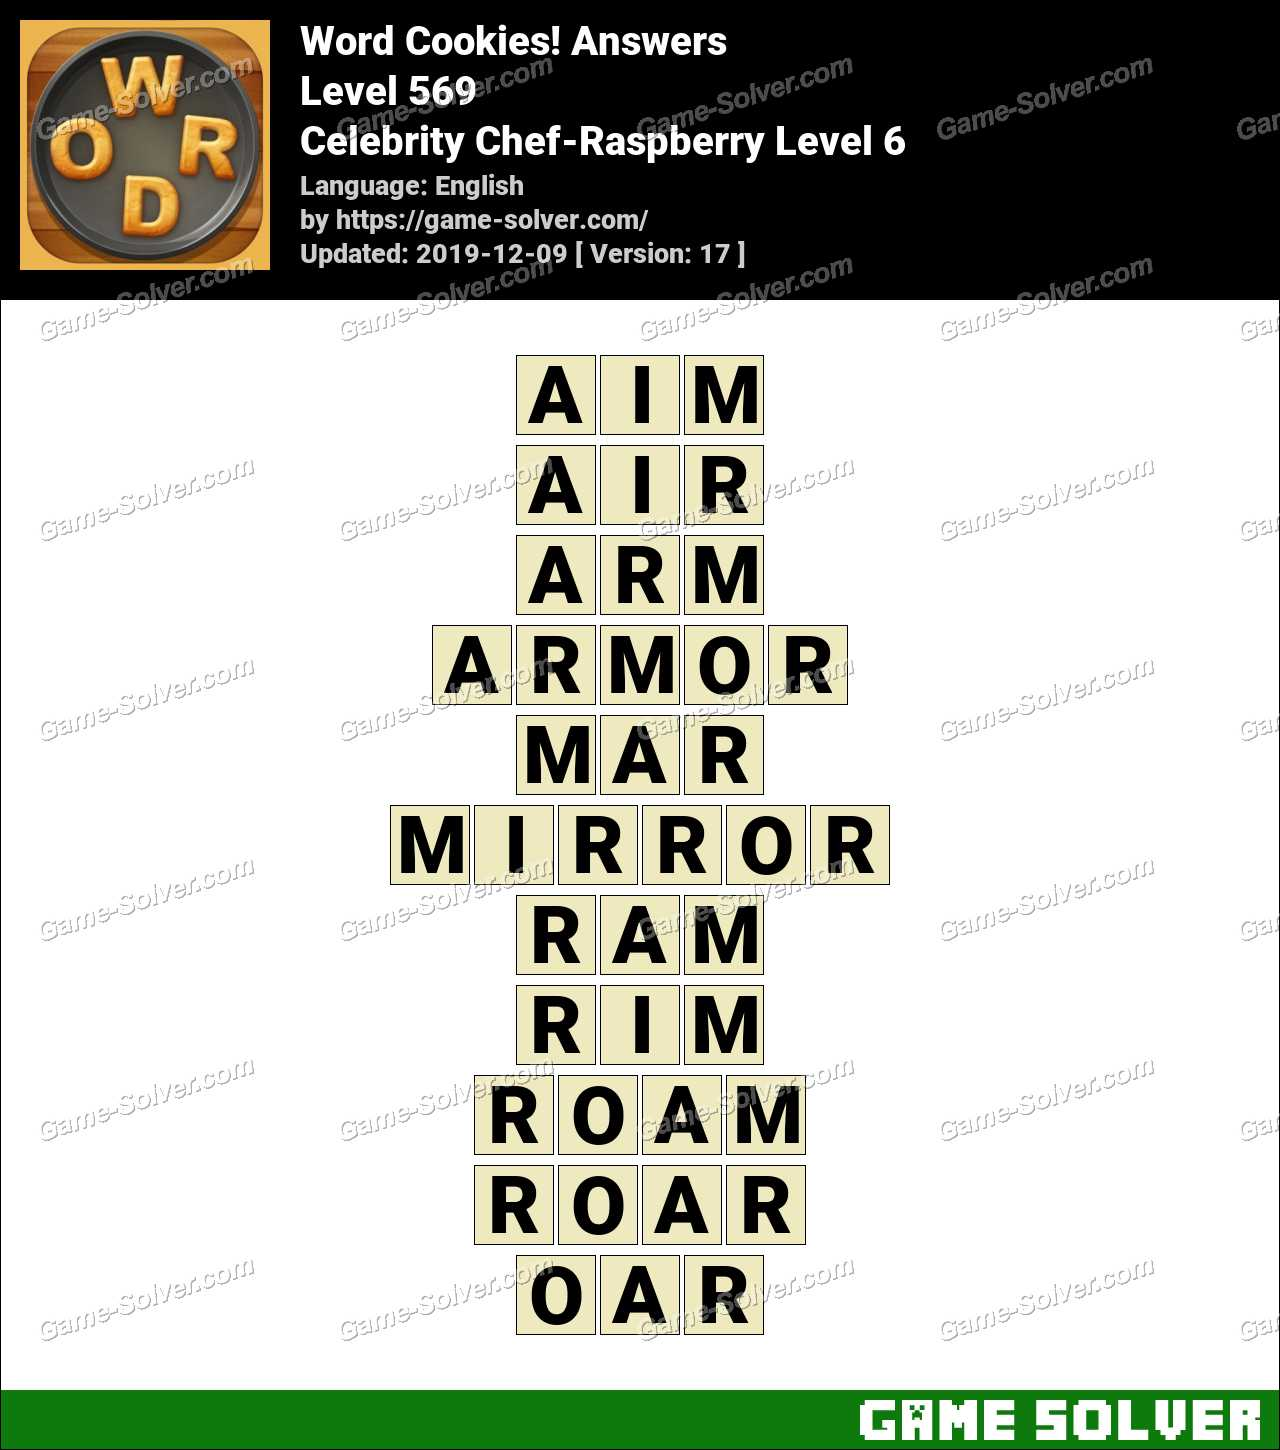 Word Cookies Celebrity Chef-Raspberry Level 6 Answers